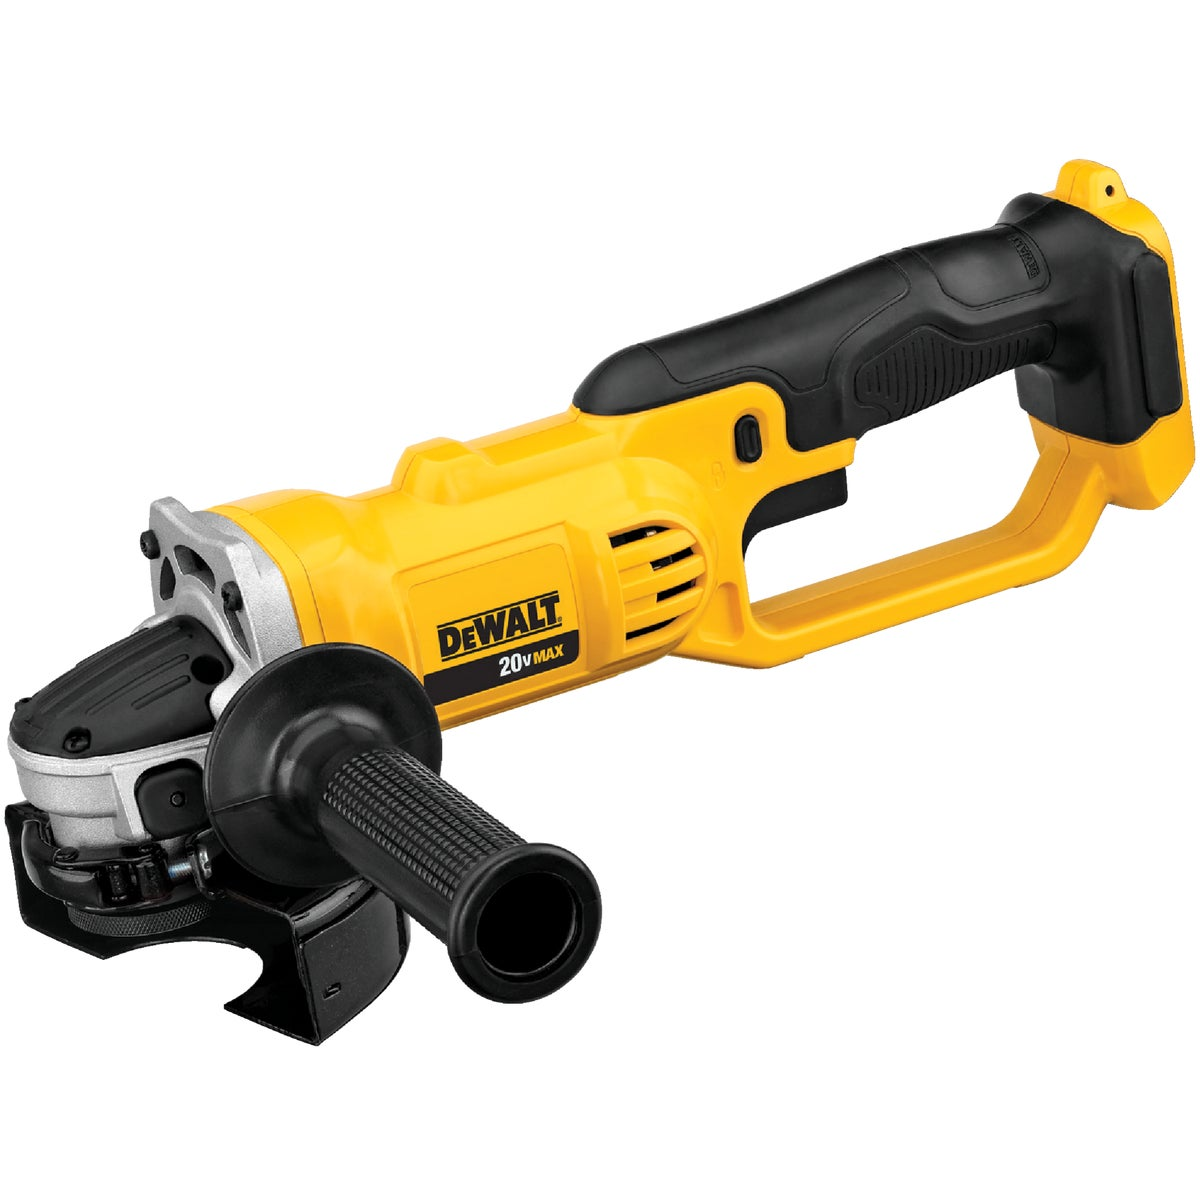 20V BARE CUT OFF TOOL - DCG412B by DeWalt